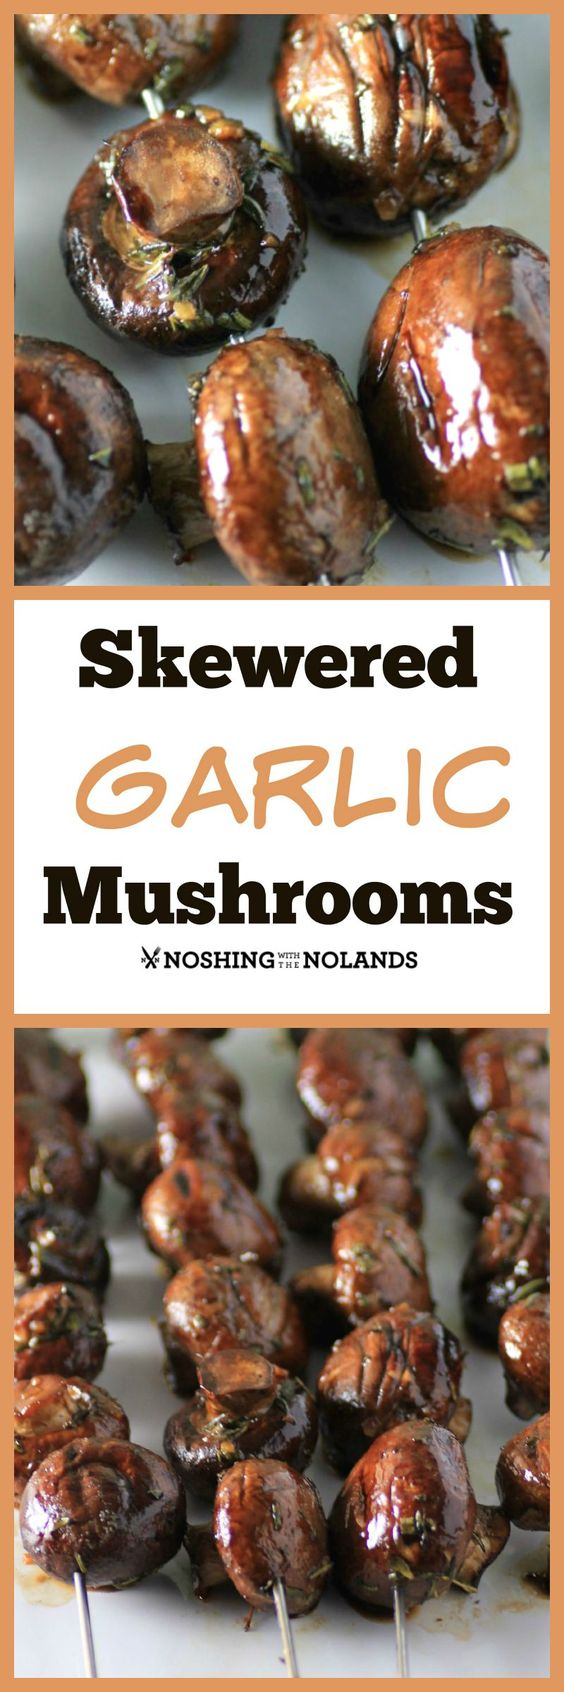 Delicious vegetarian appetizer or side dish >> Skewered Garlic Mushrooms Recipe from Noshing with the Nolands - These make a great BBQ side dish with meat, too.